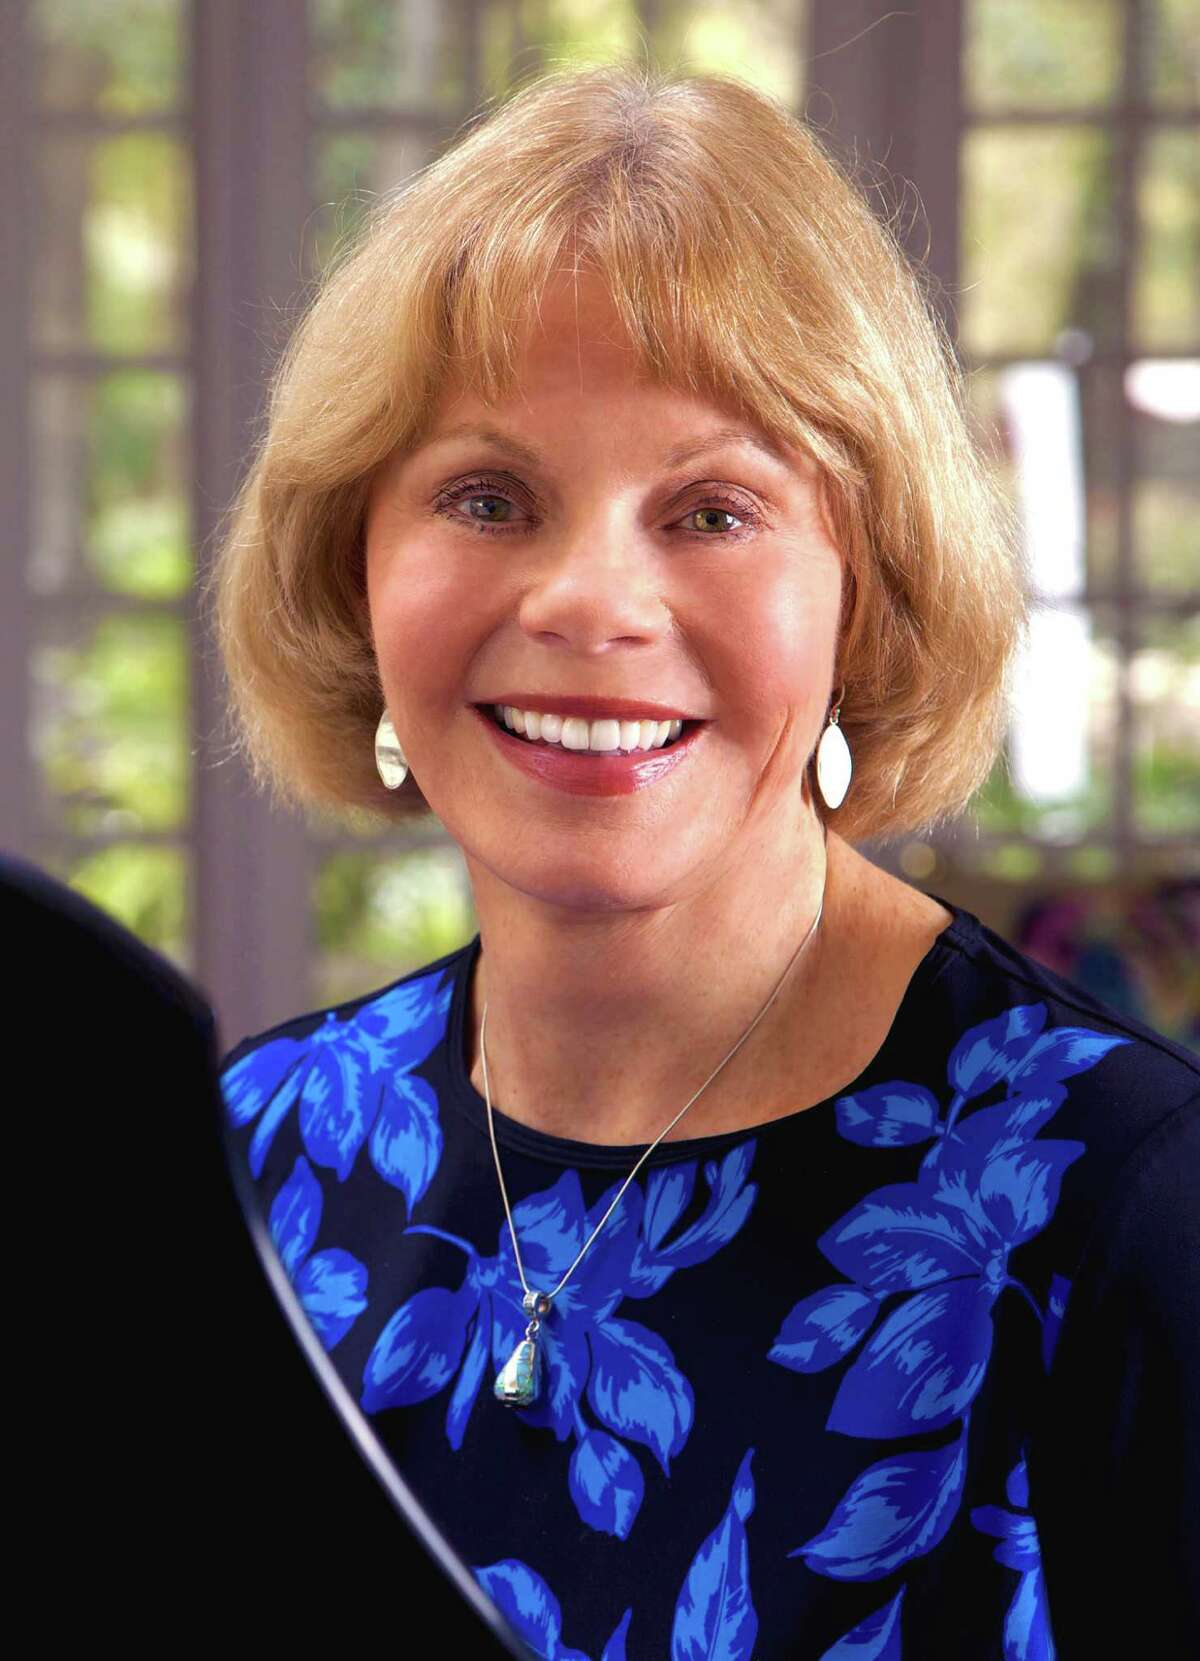 Toni Tennille's new memoir shares the private misery of her relationship with the Captain, Daryl Dragon.